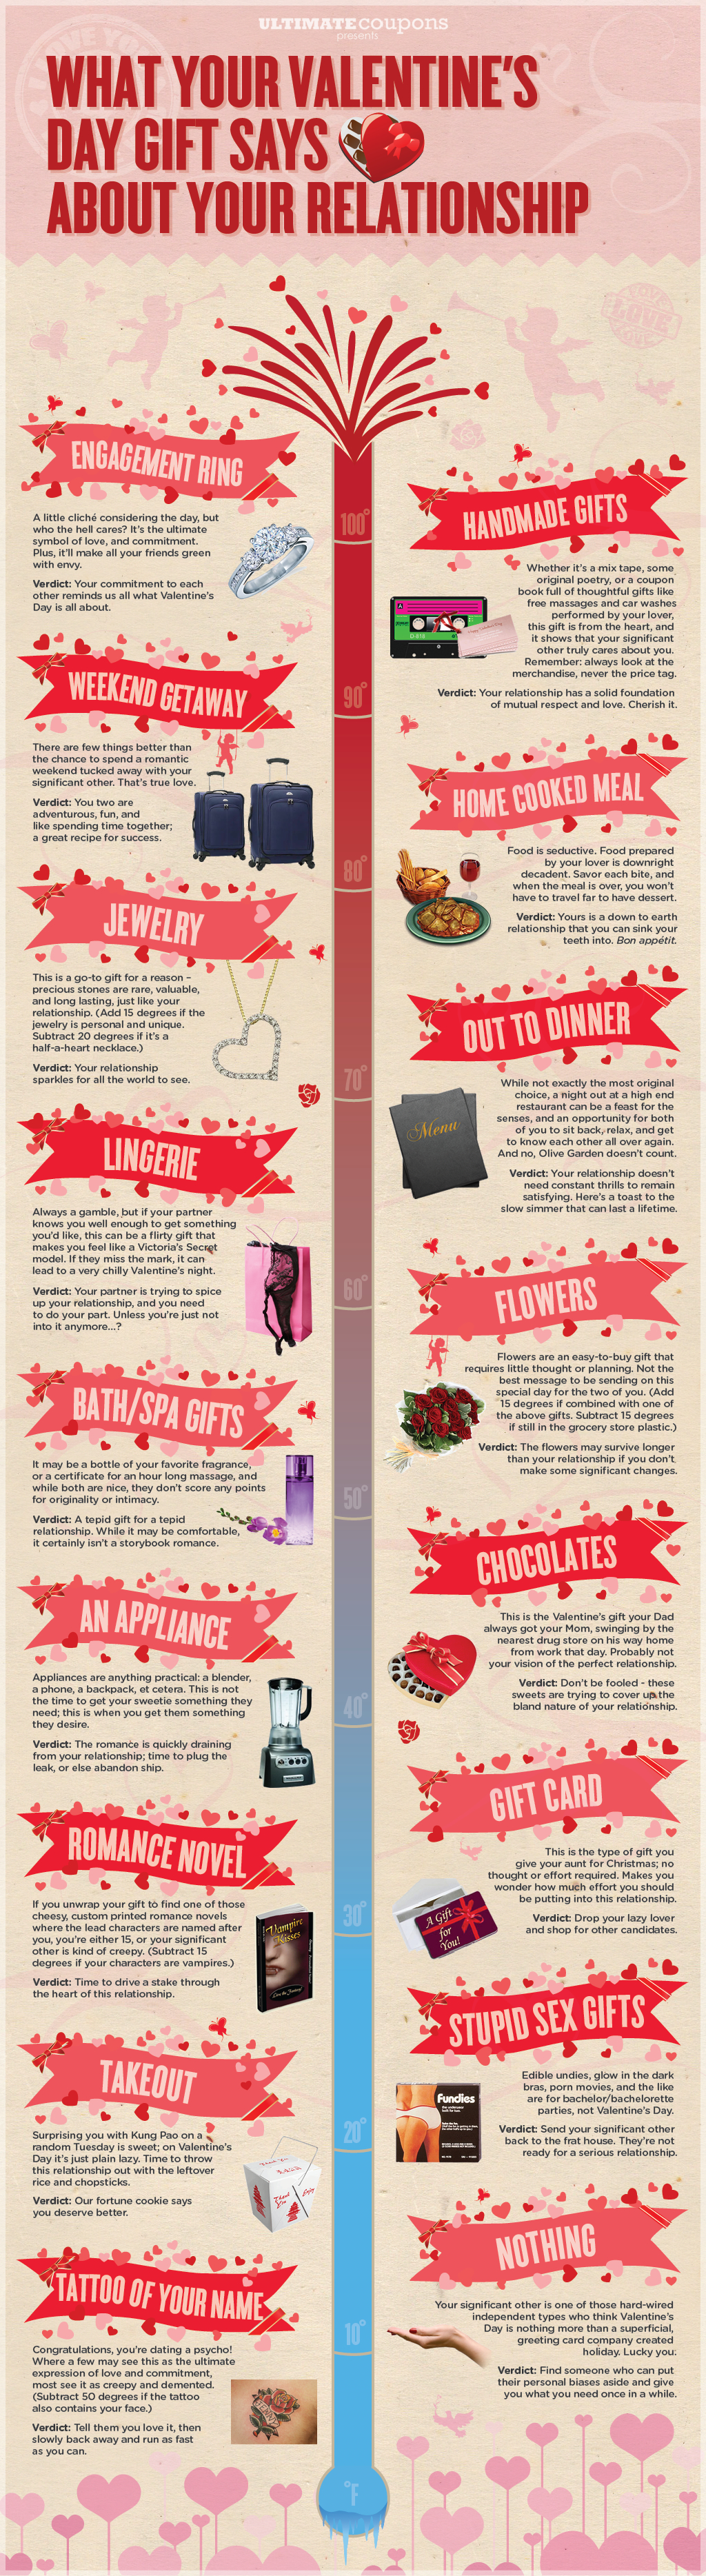 valentines day gift infographic